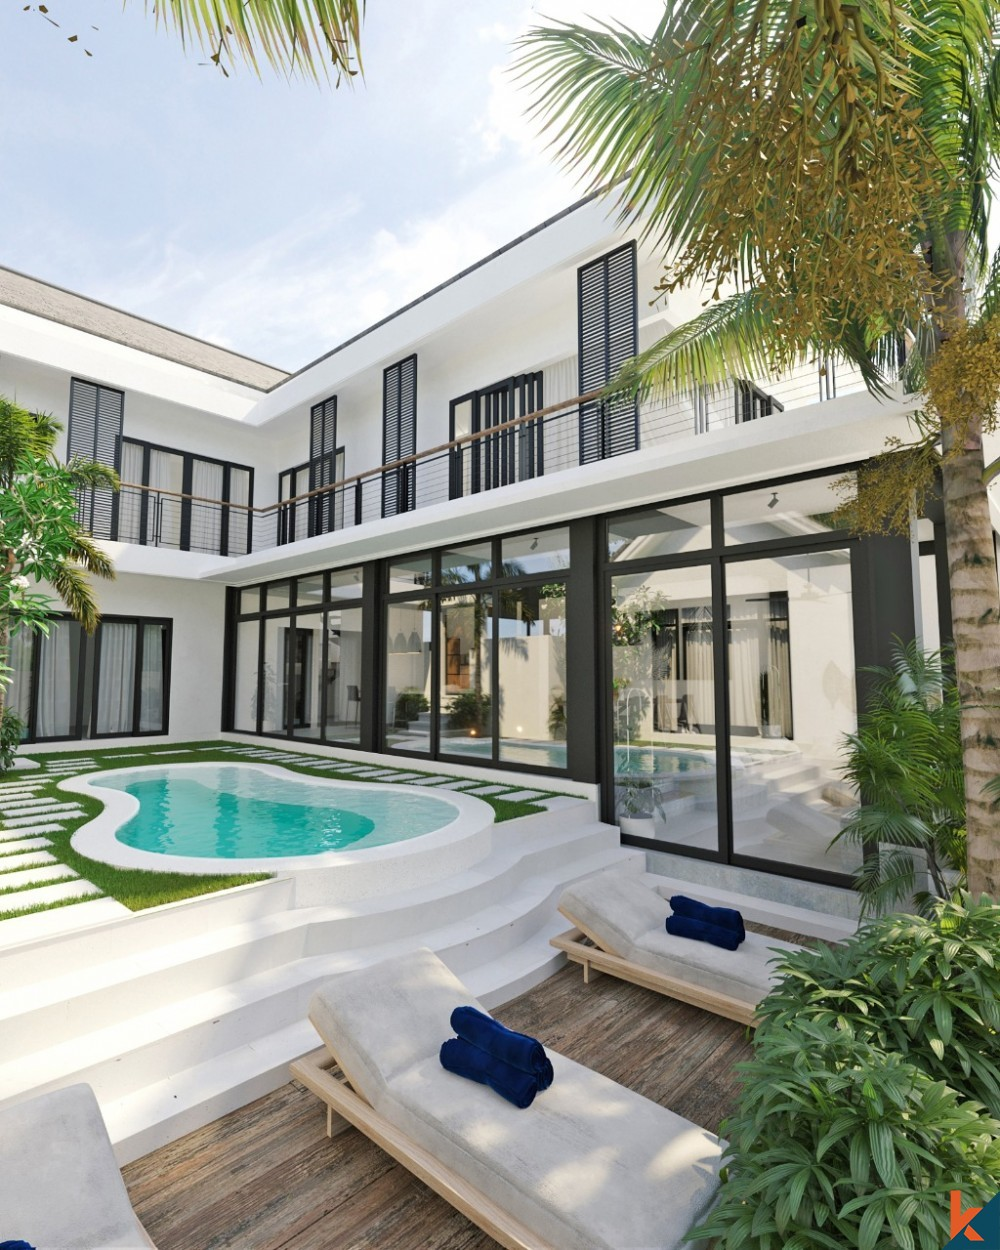 STYLISH MODERN 4 BEDROOM LEASEHOLD VILLA COMPLETE IN JULY 2021 IN KAYU TULANG